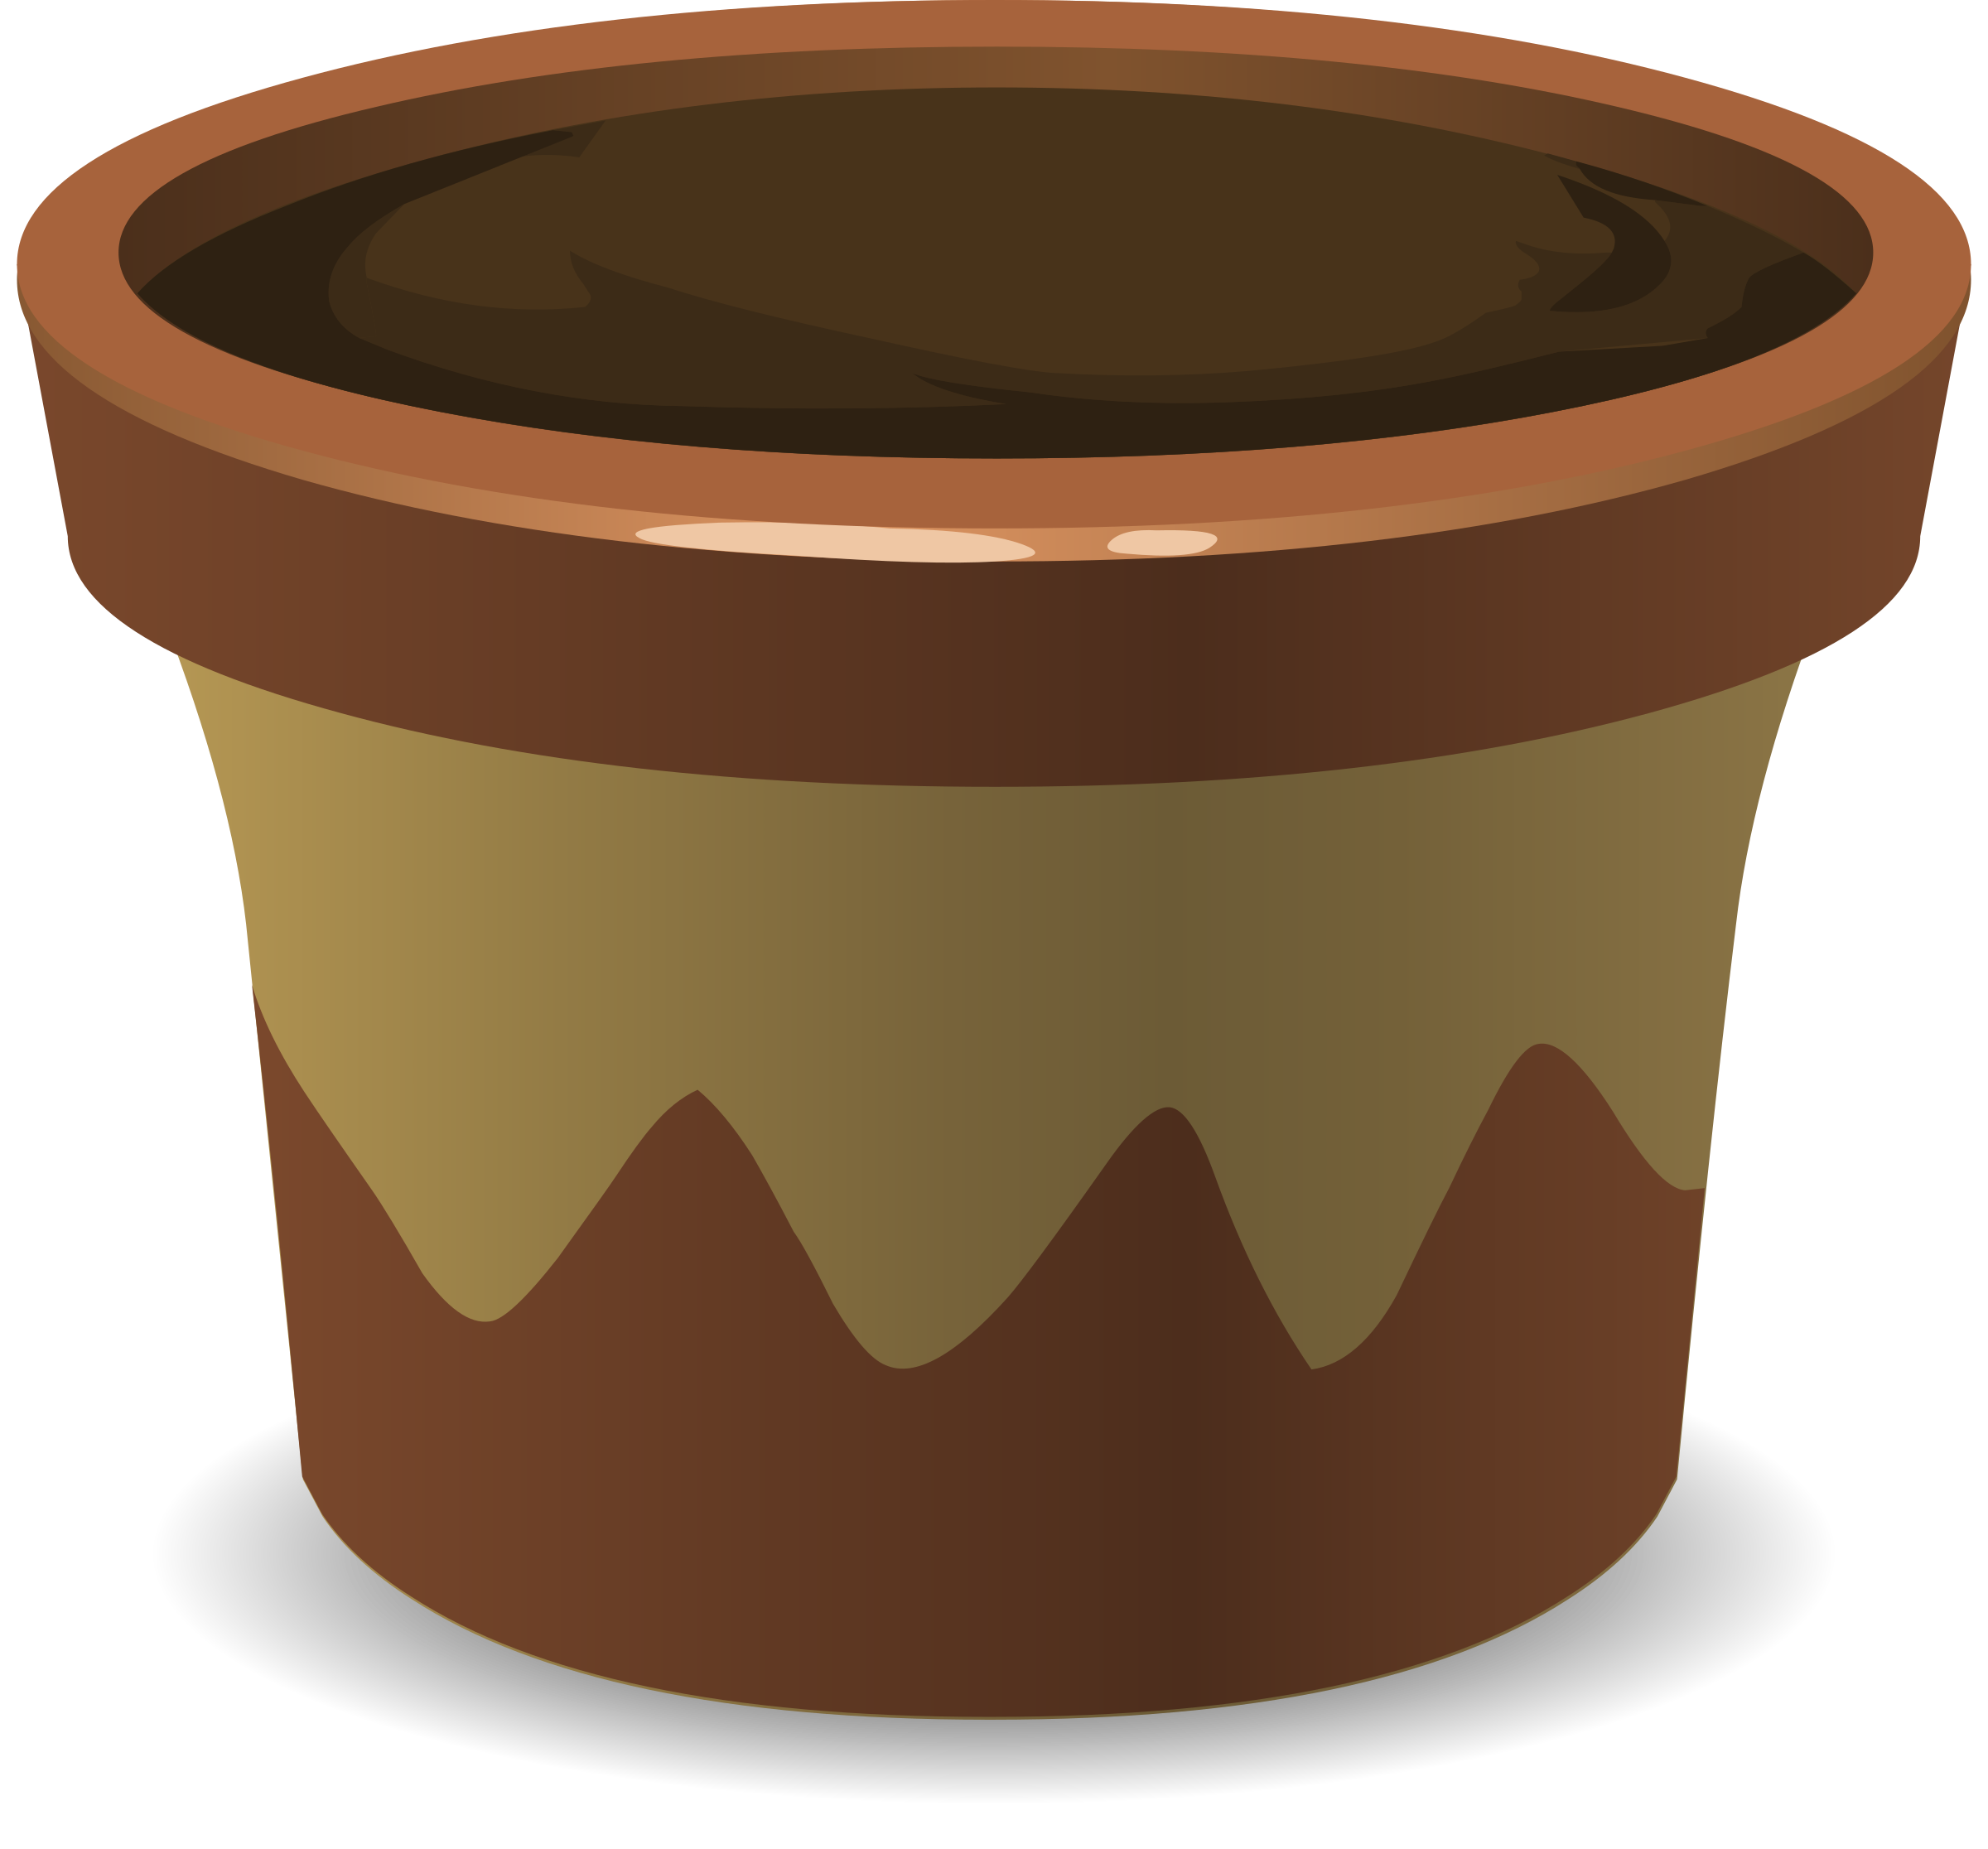 Pot from glitch icons. Growth clipart potted plant